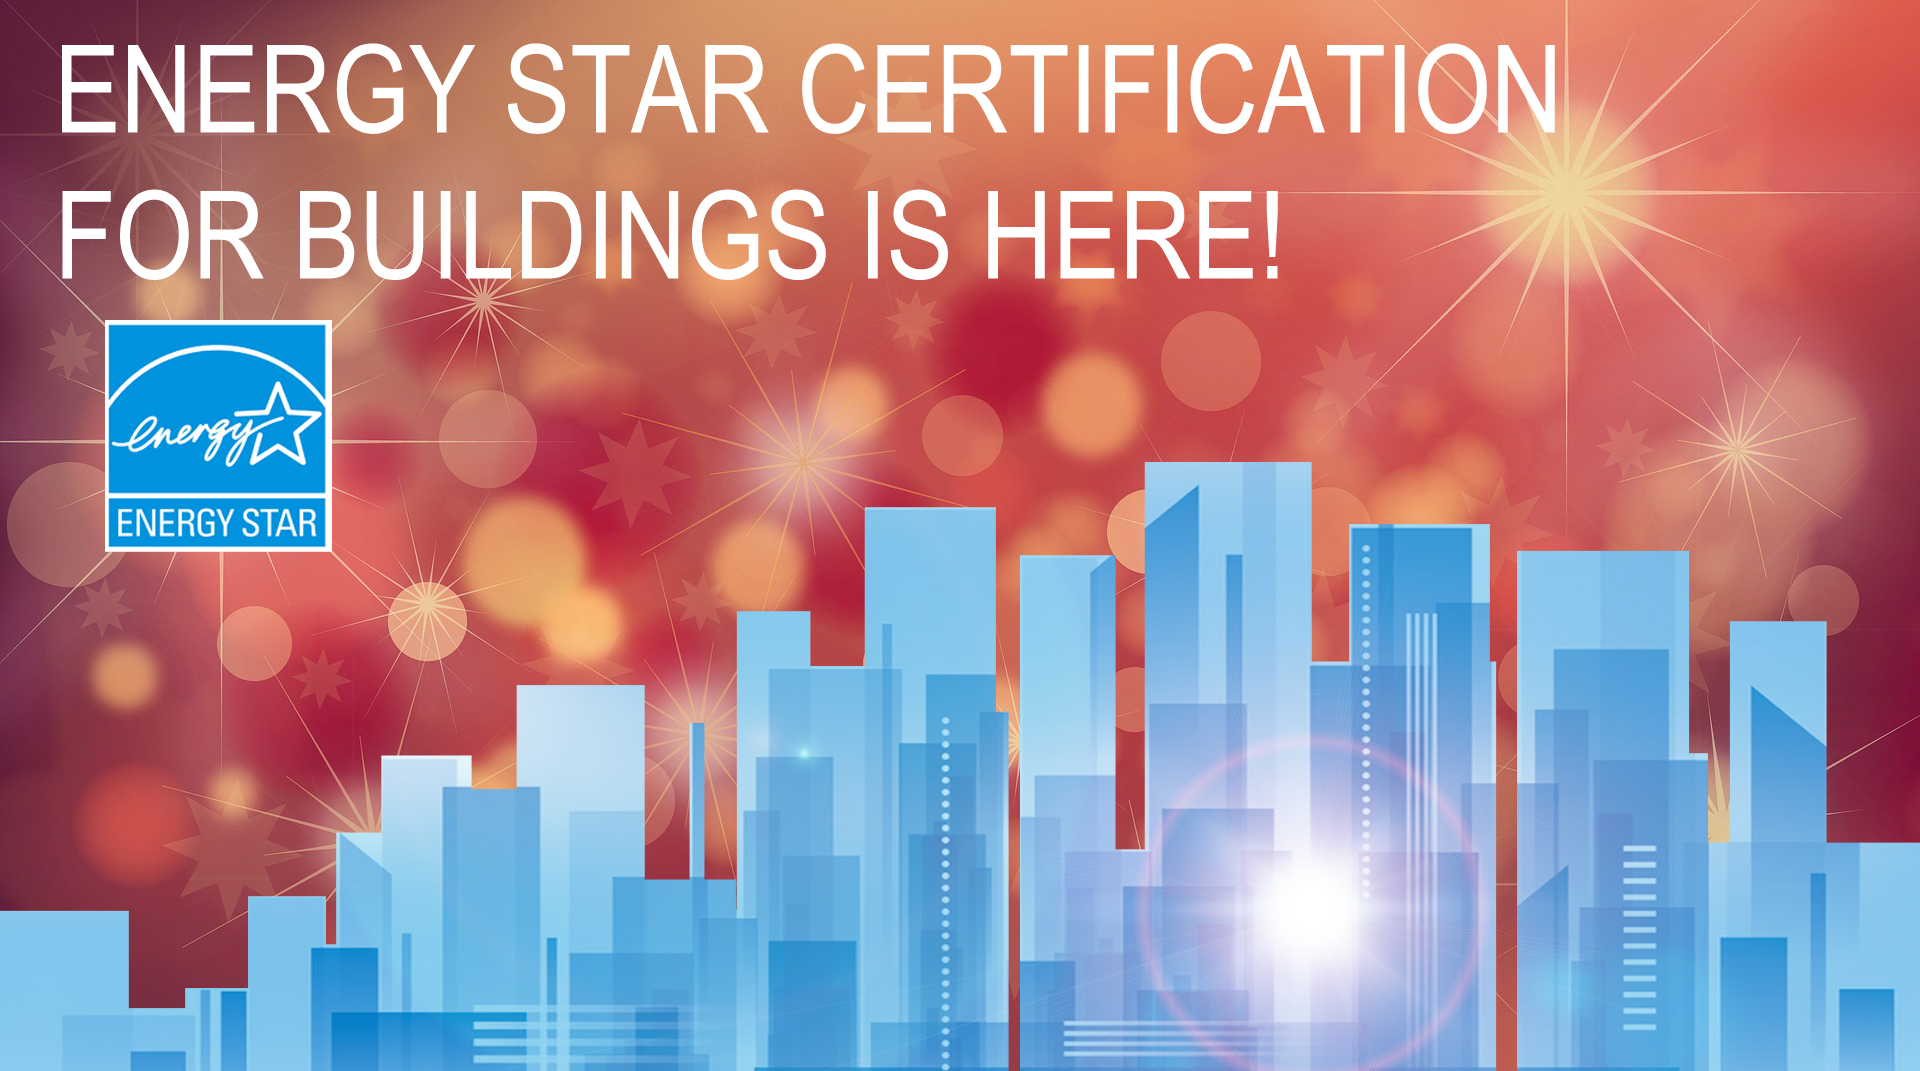 ENERGY STAR CERTIFICATION IS HERE!:  ENERGY STAR CERTIFICATION IS HERE!